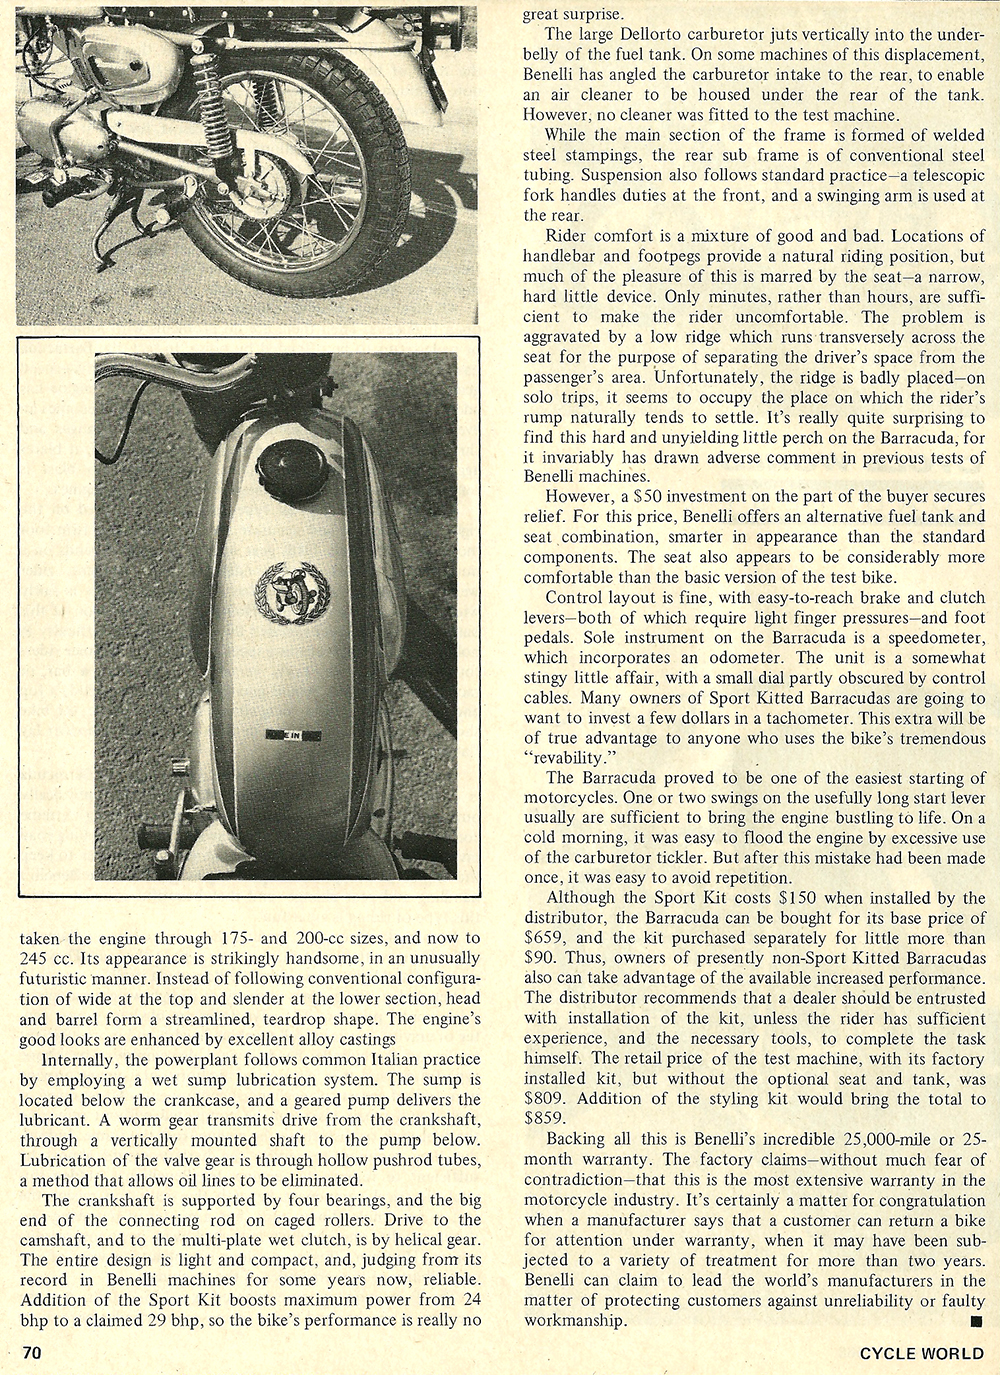 1968 Benelli Barracuda 250 road test 03.jpg